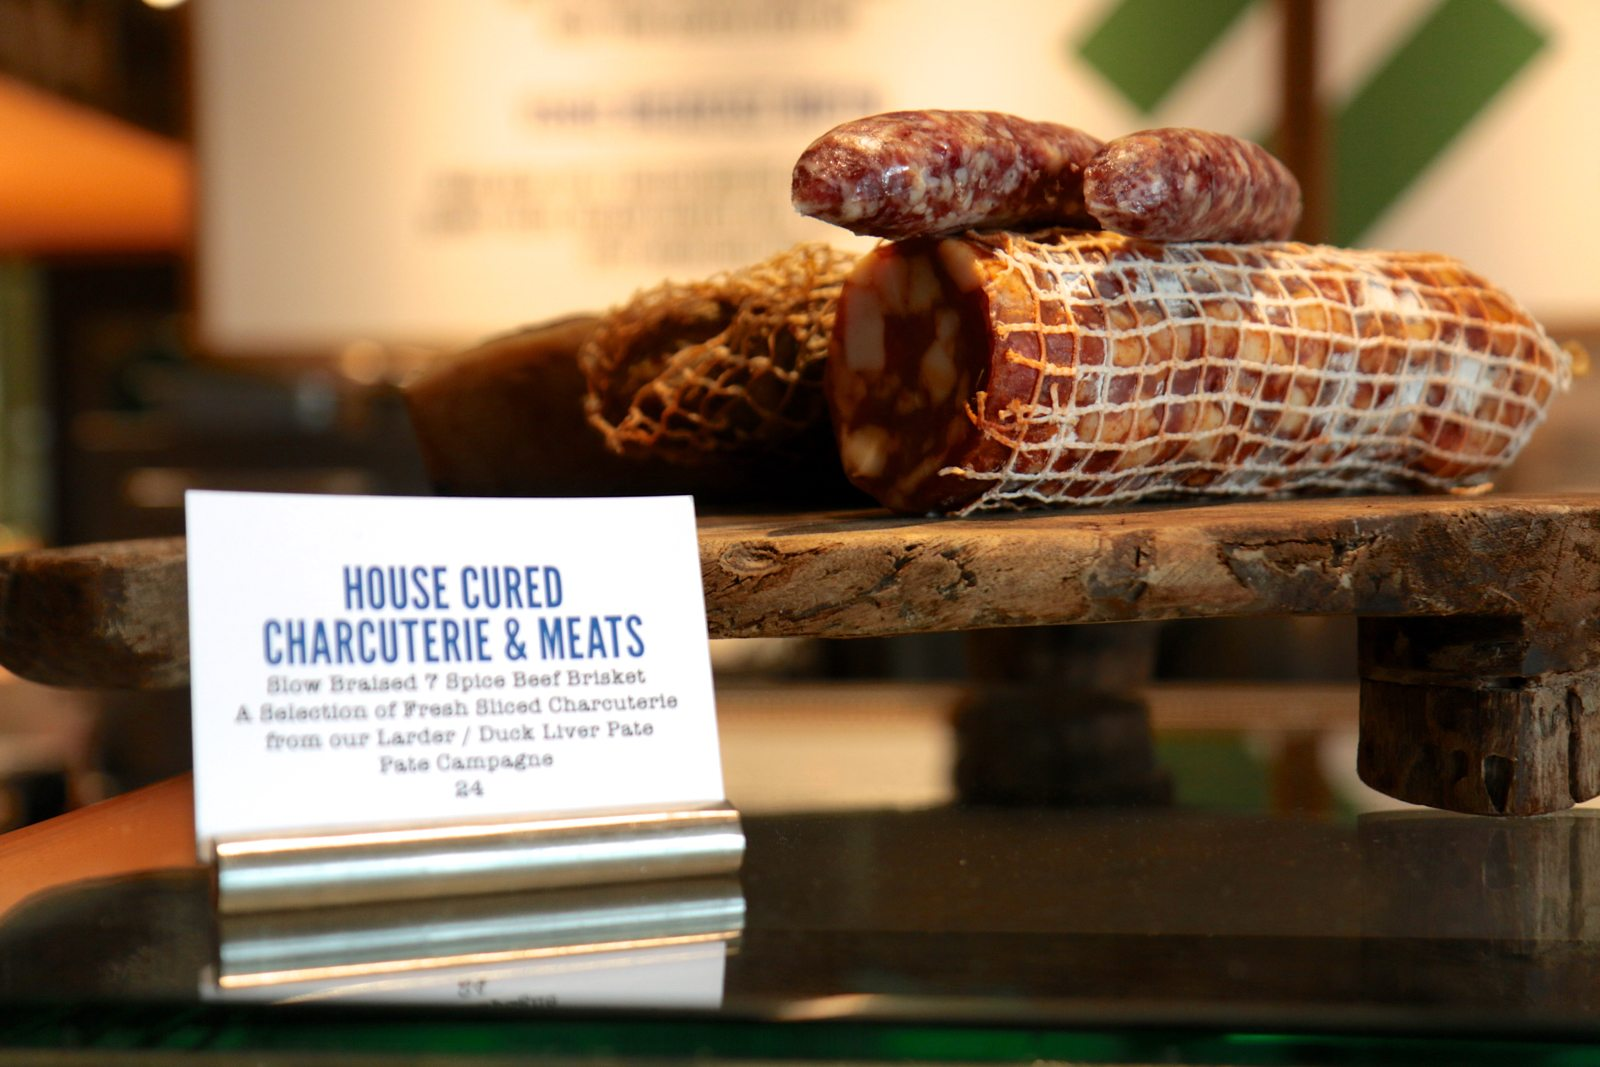 Charcuterie is cured in-house.